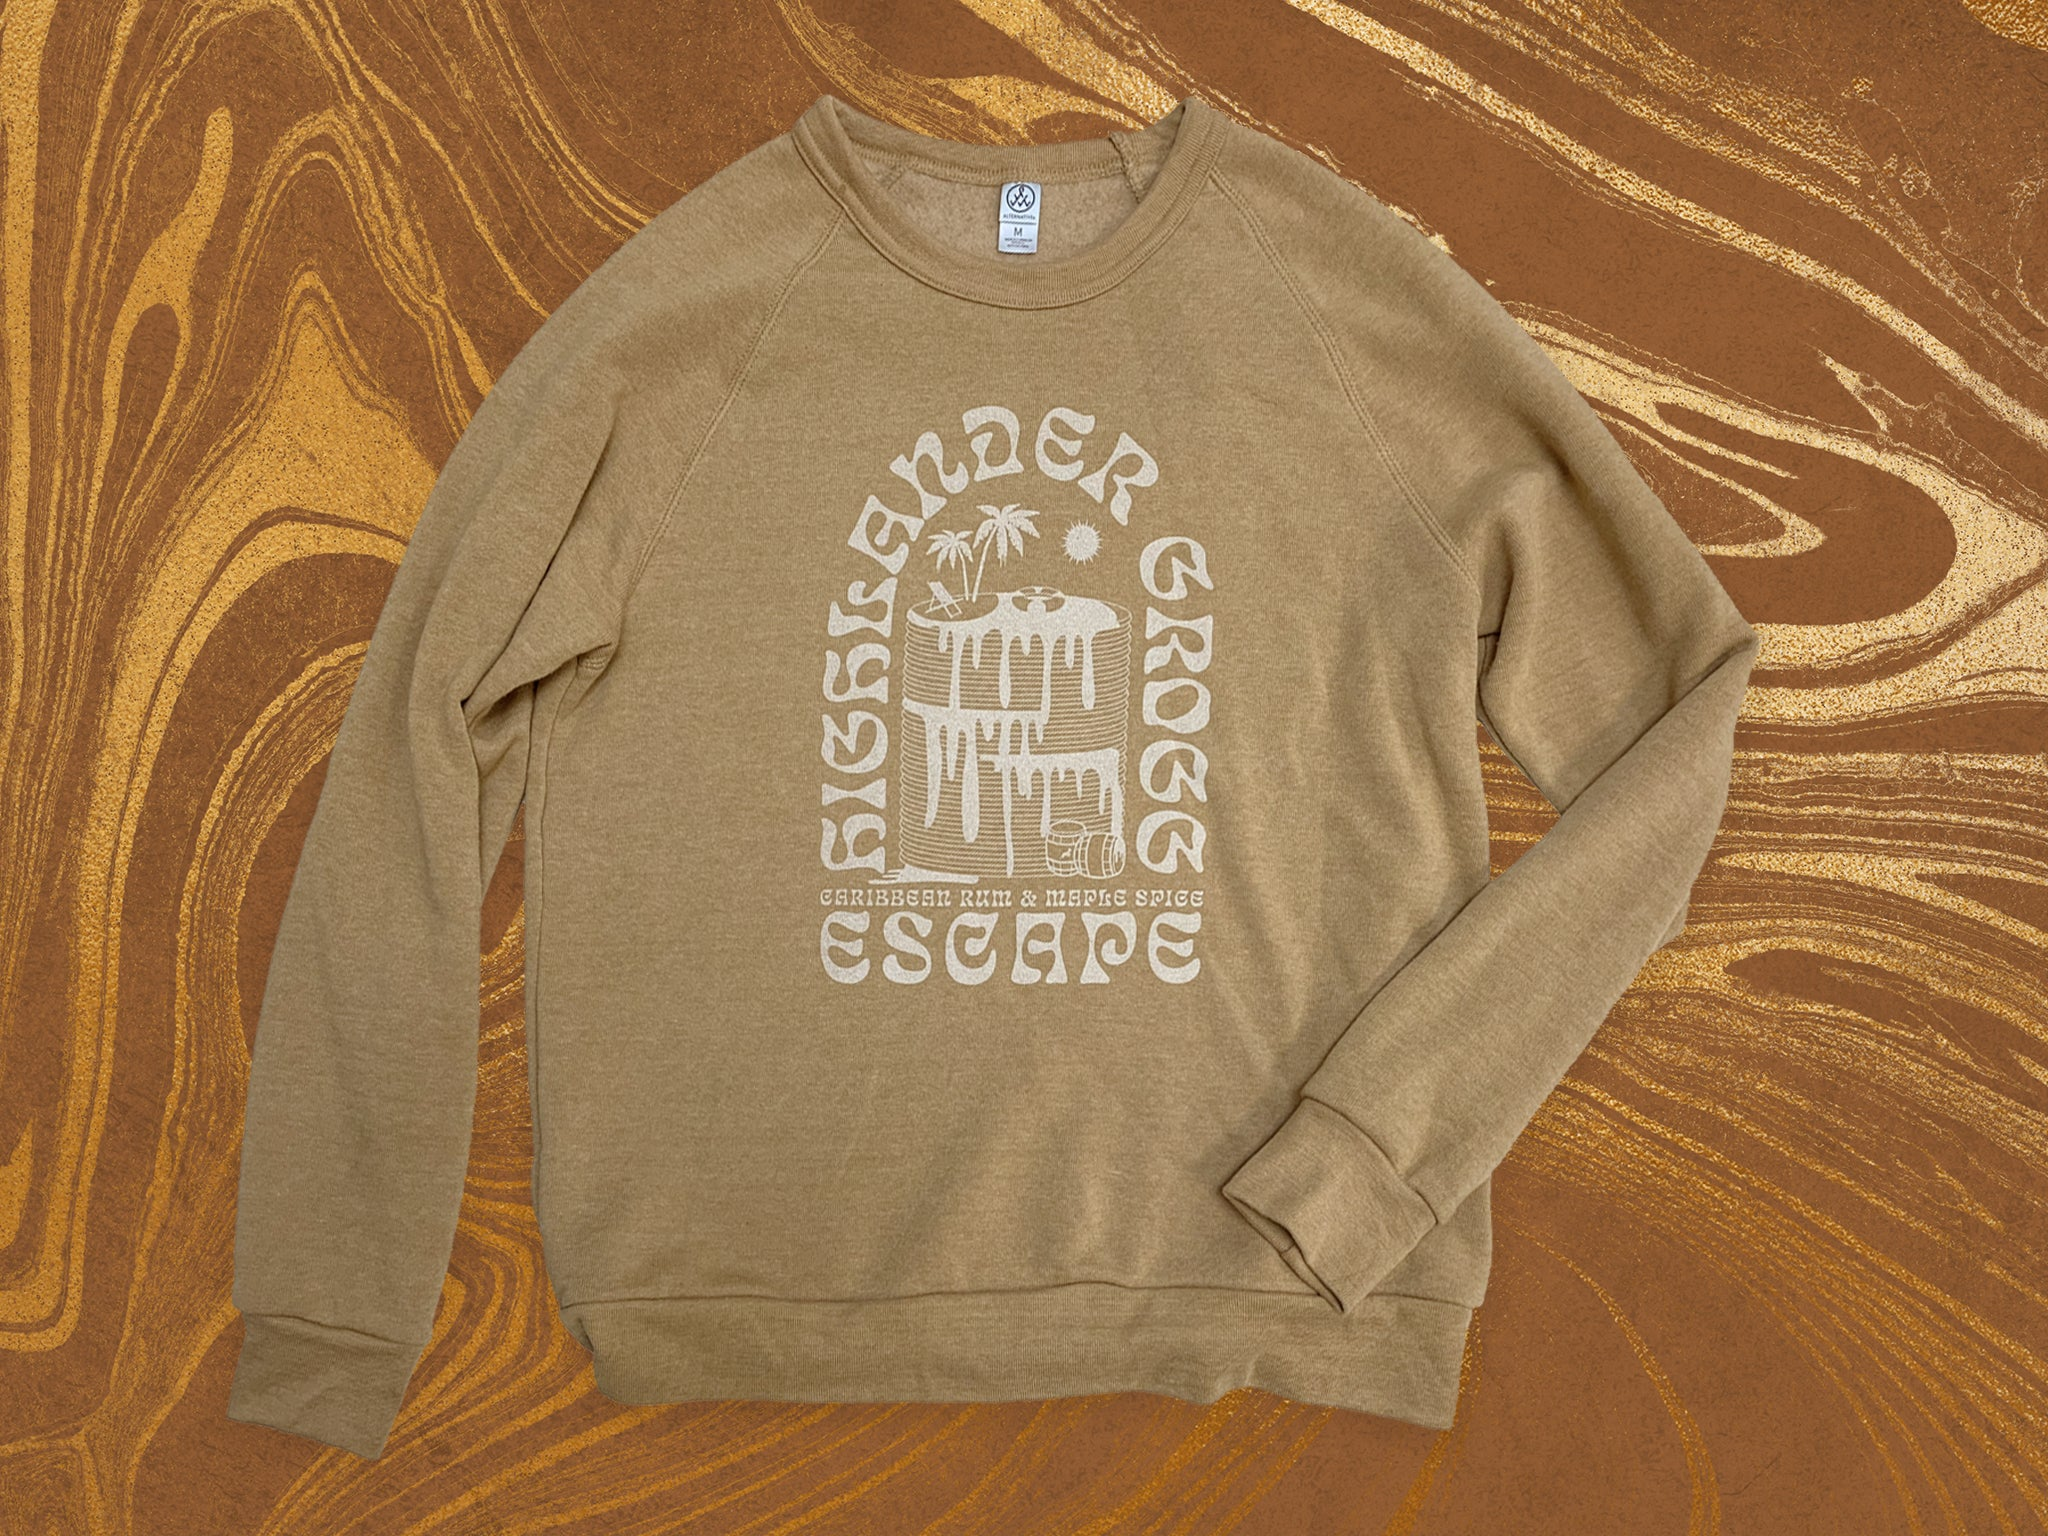 Highlander Grogg Coffee Escape Sweatshirt - limited quantities and exclusive to Highlander Grogg fans!